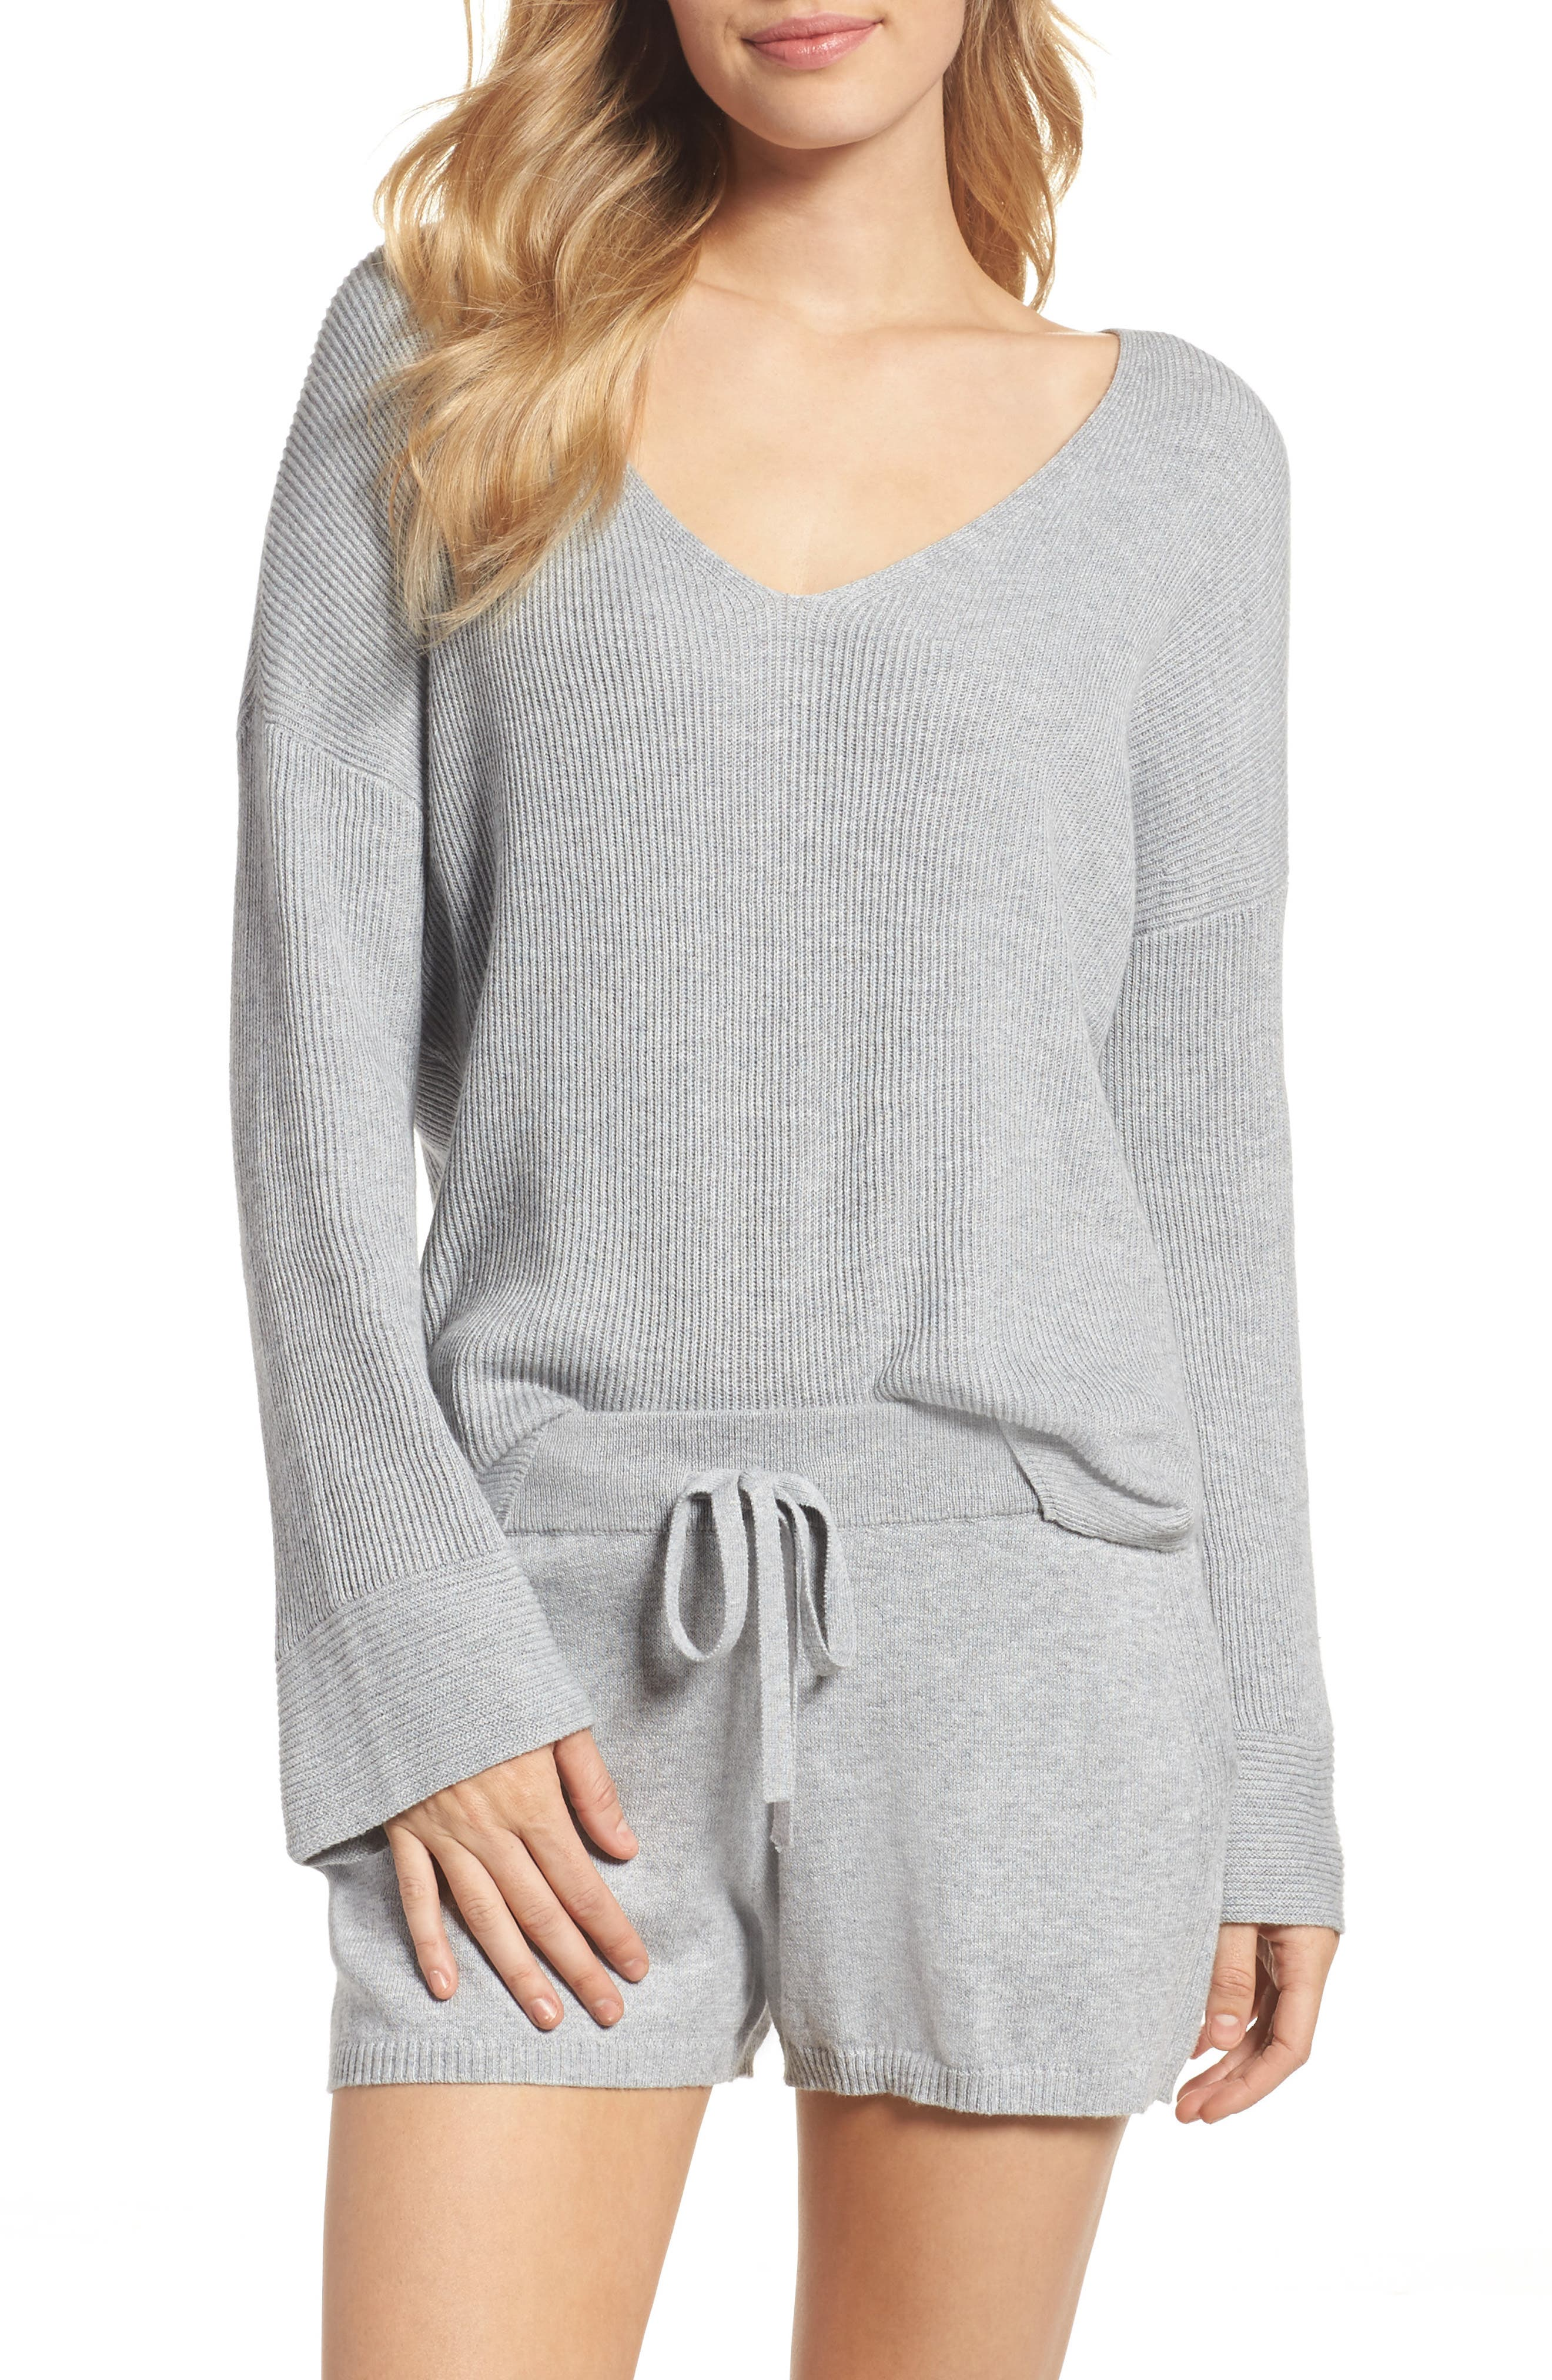 Veronica Lounge Pullover,                             Alternate thumbnail 13, color,